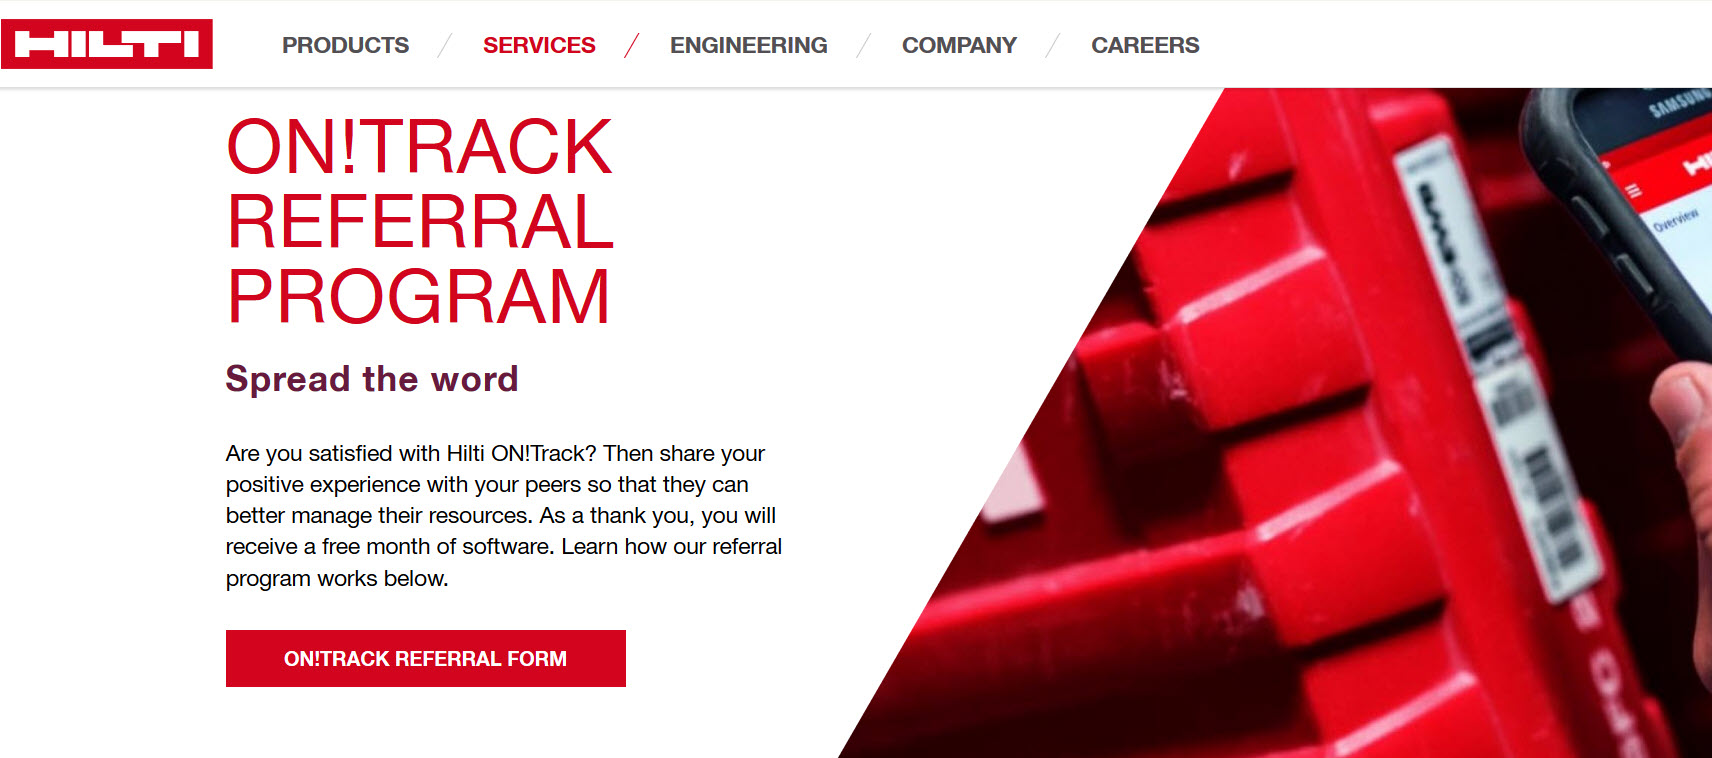 Hilti's ontrack referral service